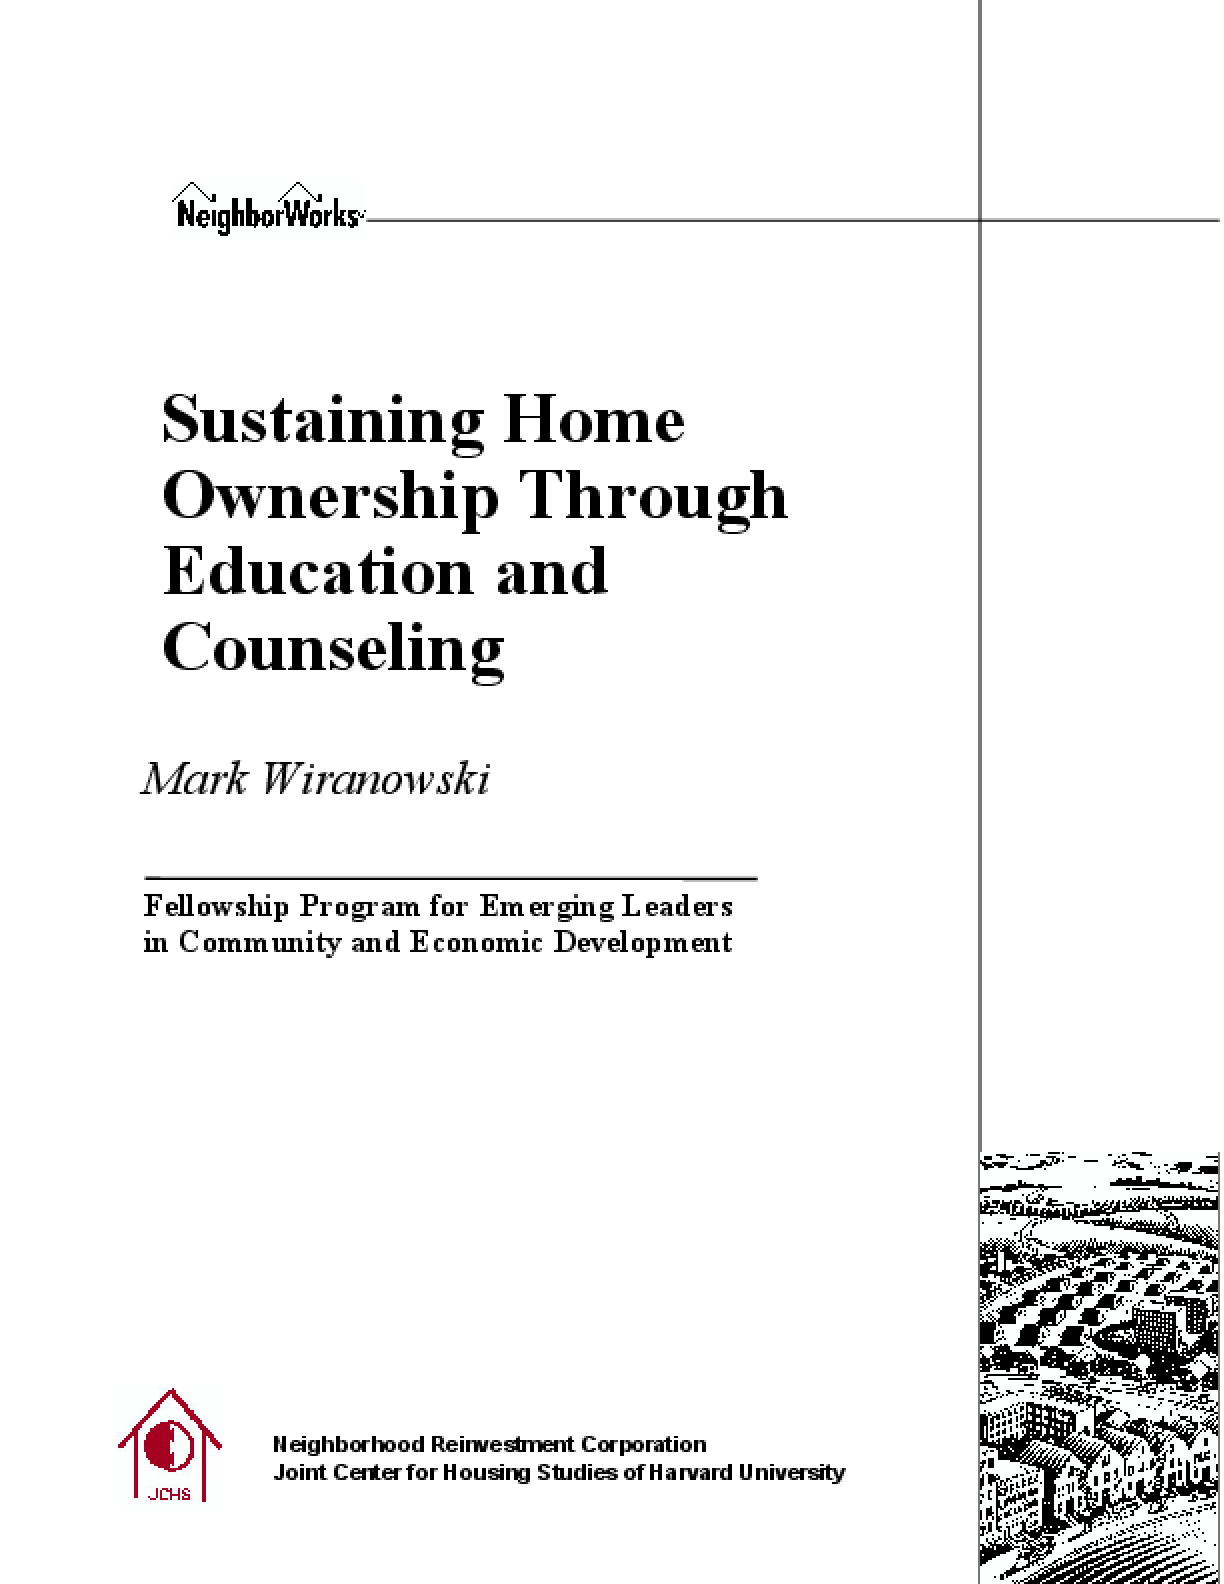 Sustaining Homeownership Through Education and Counseling